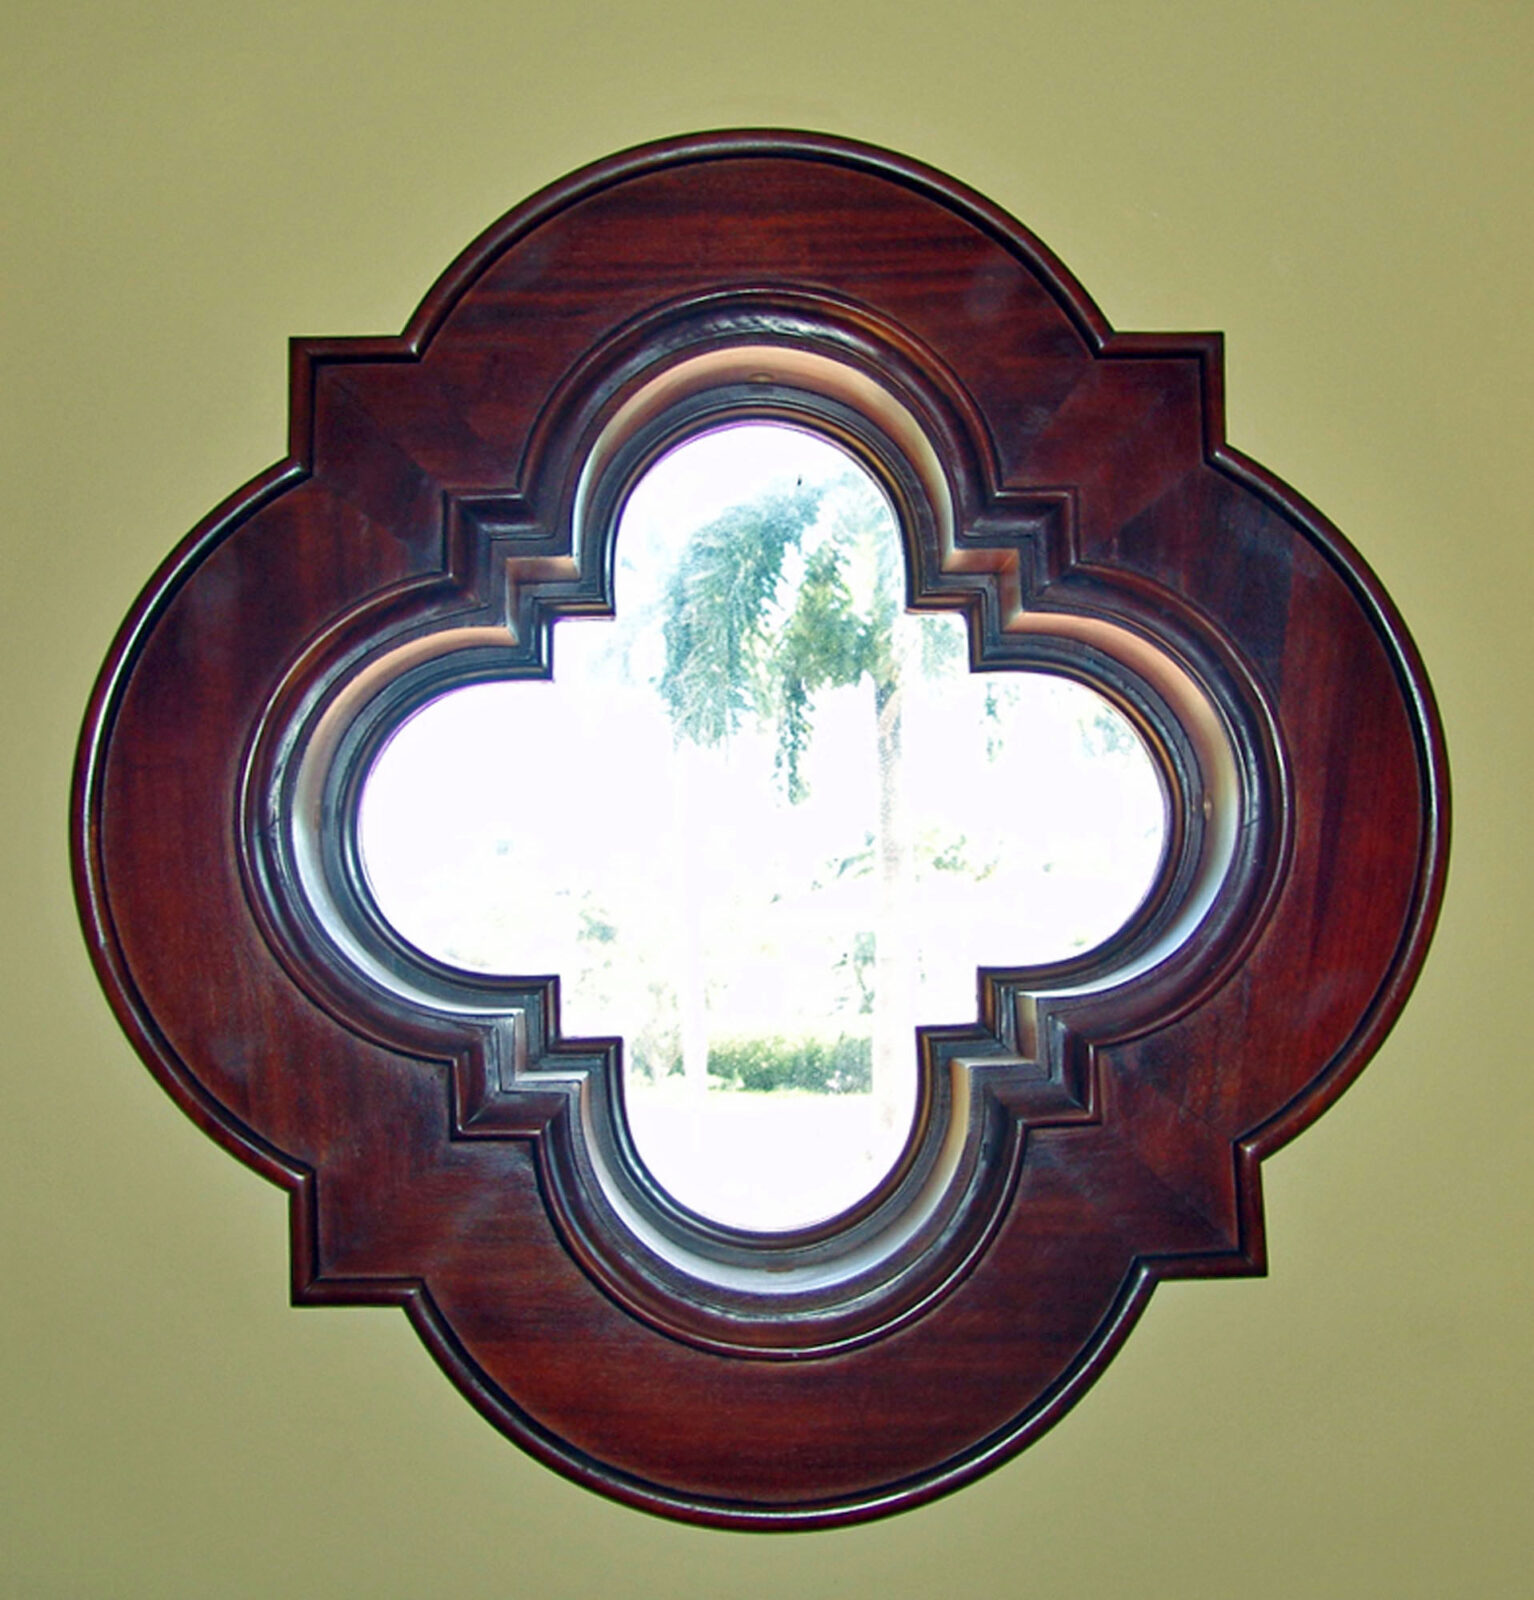 NURMI ISLAND FLORENTINE WINDOW